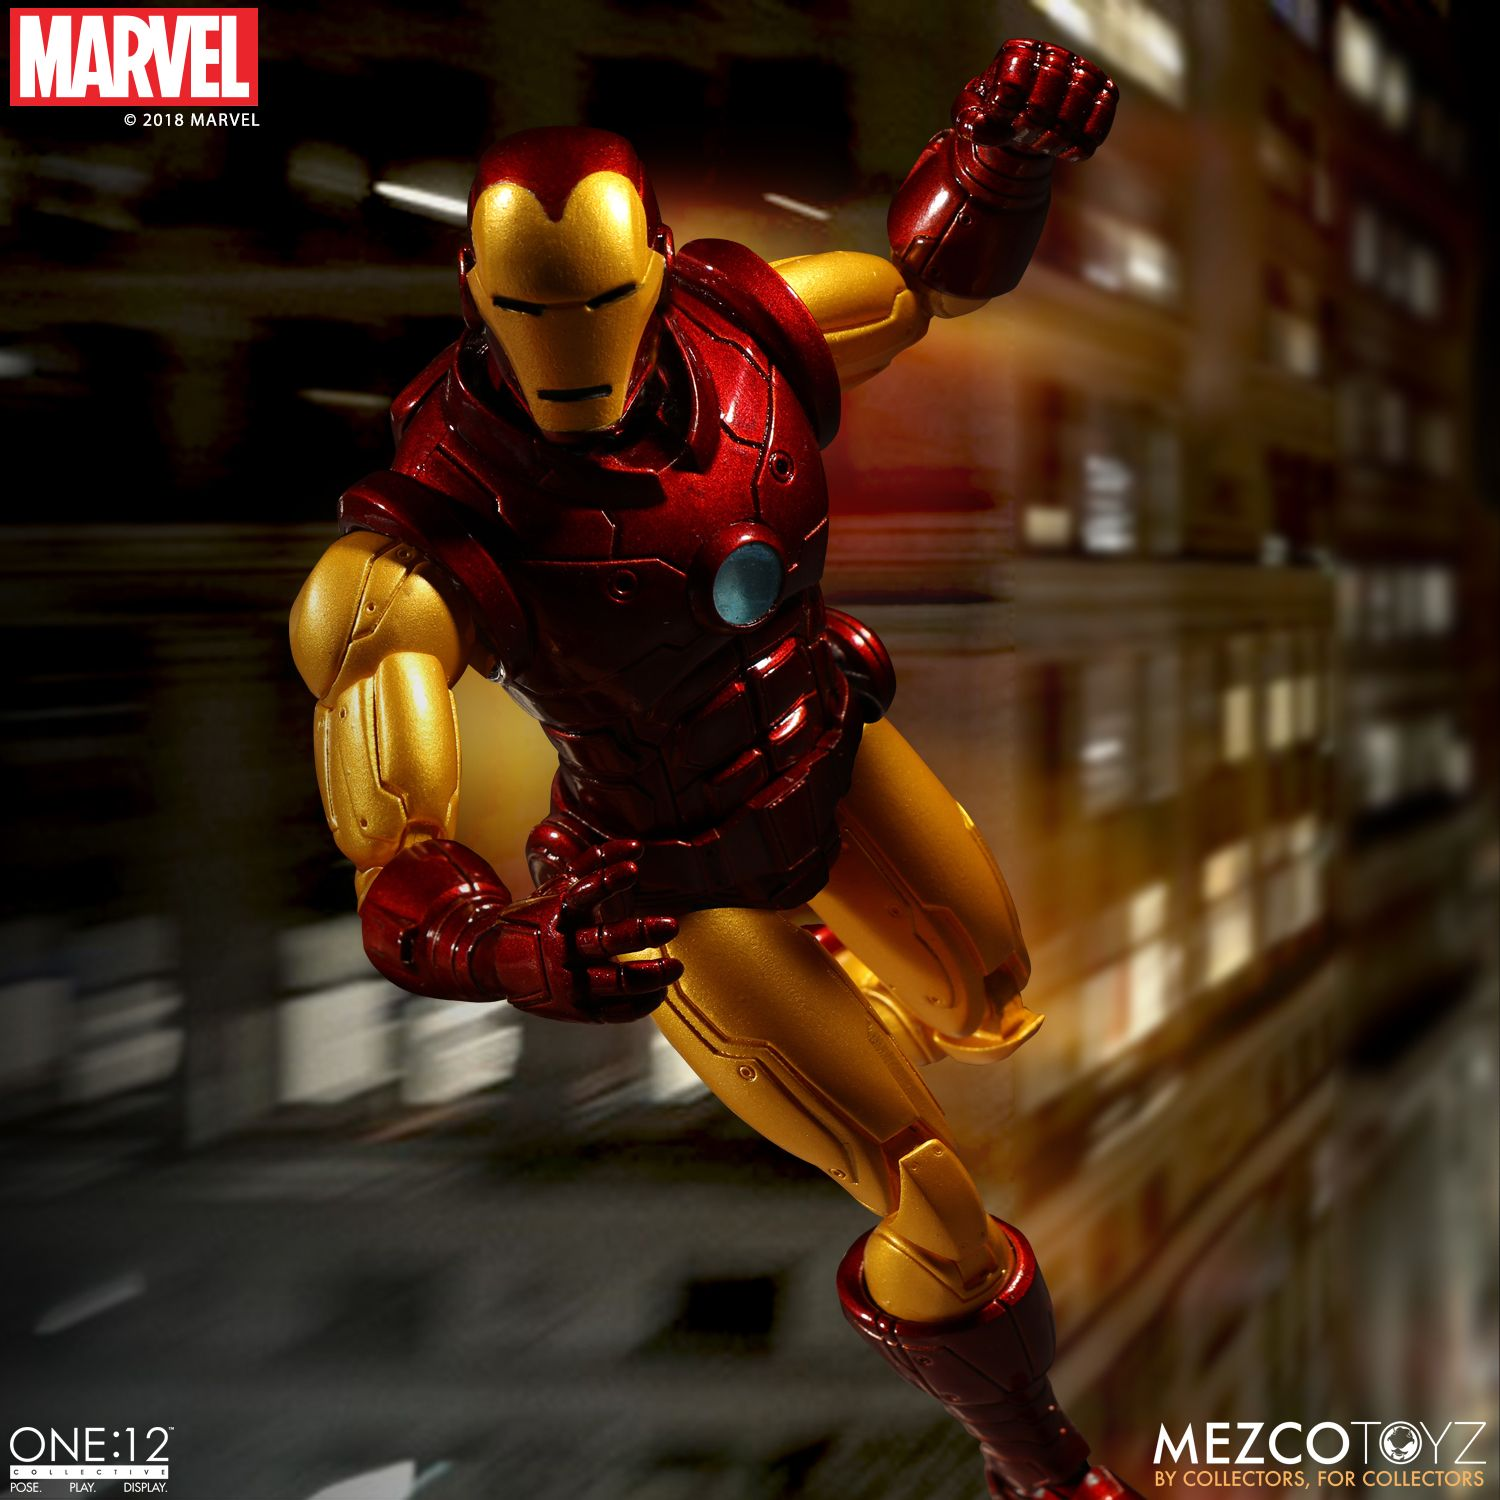 Mezco - One:12 Collective - Iron Man